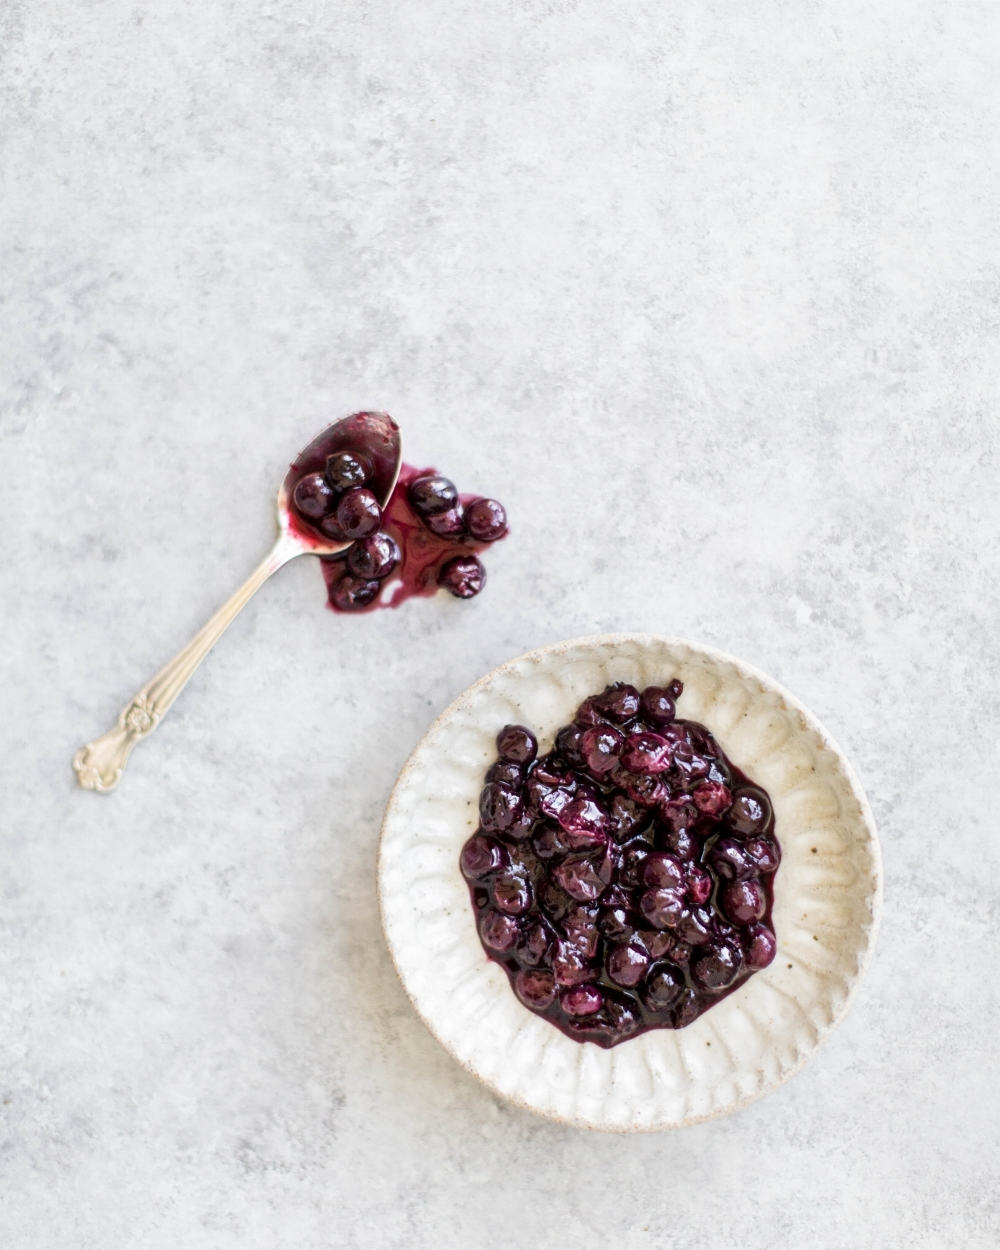 Blueberry compote.jpg